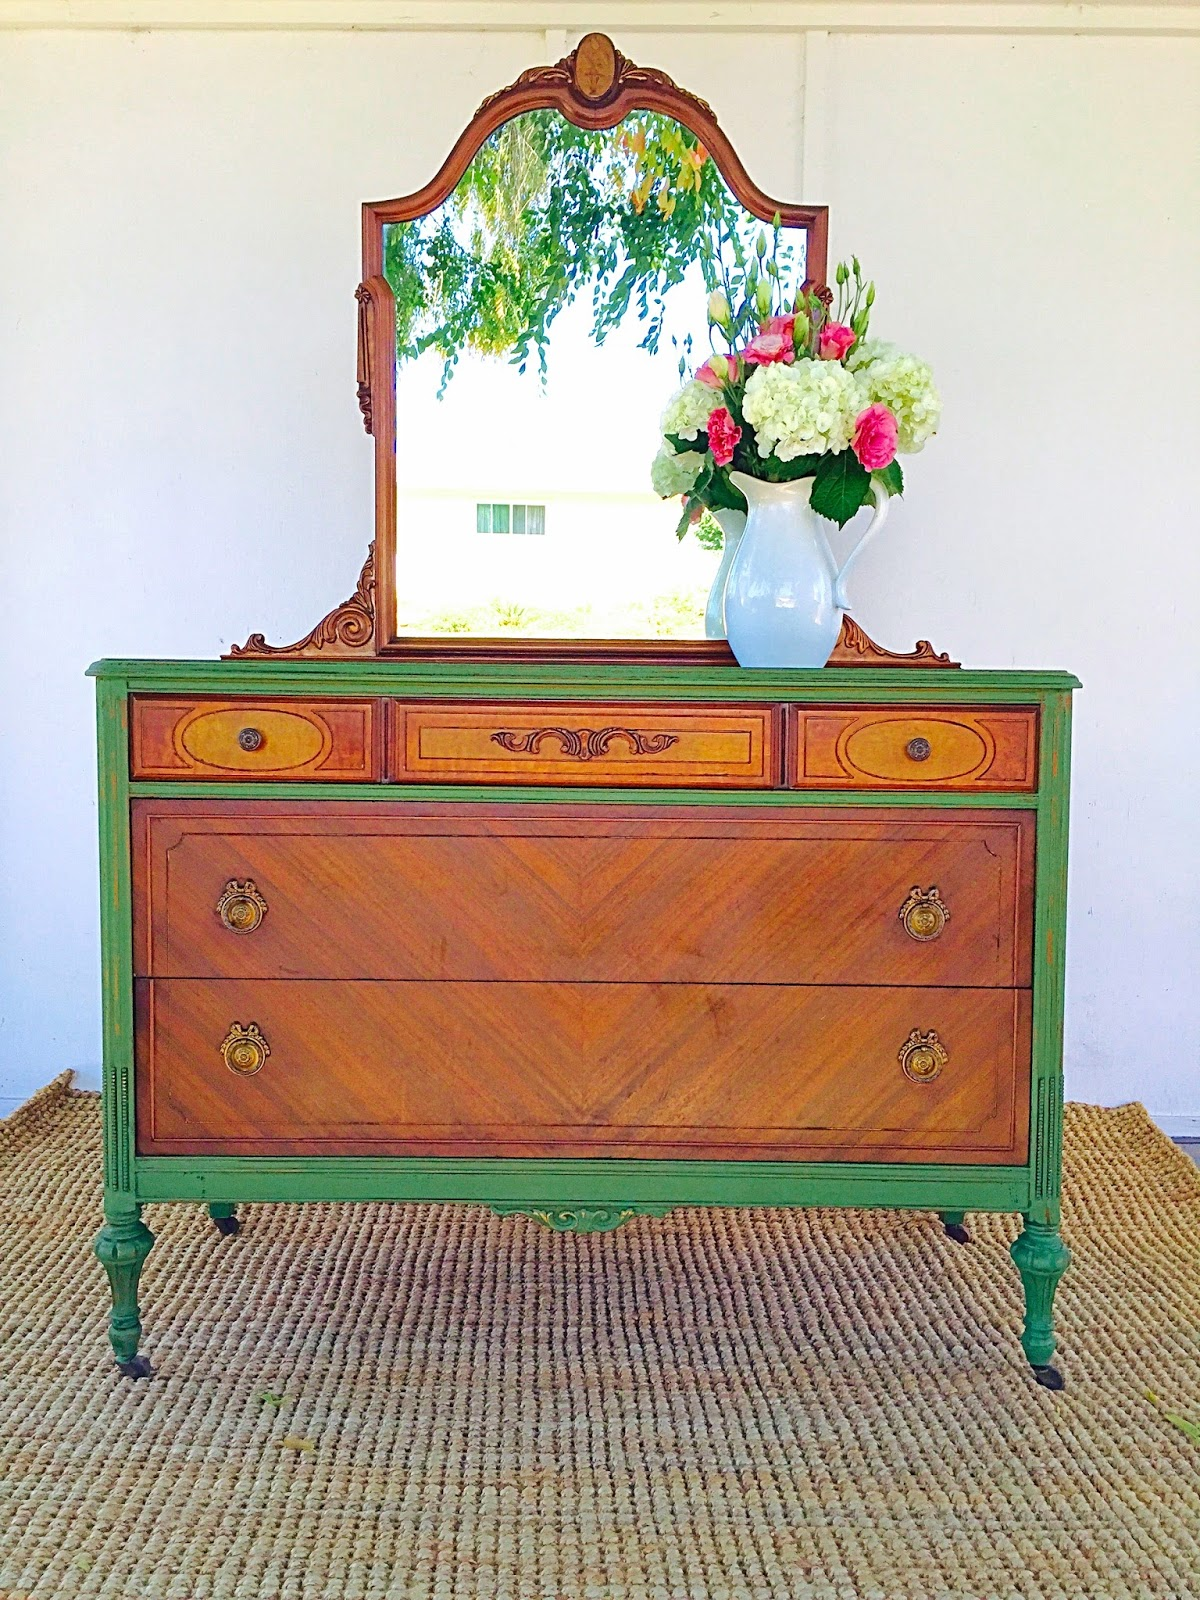 D d 39 s cottage and design vibrant green milk paint dresser Paint wood furniture